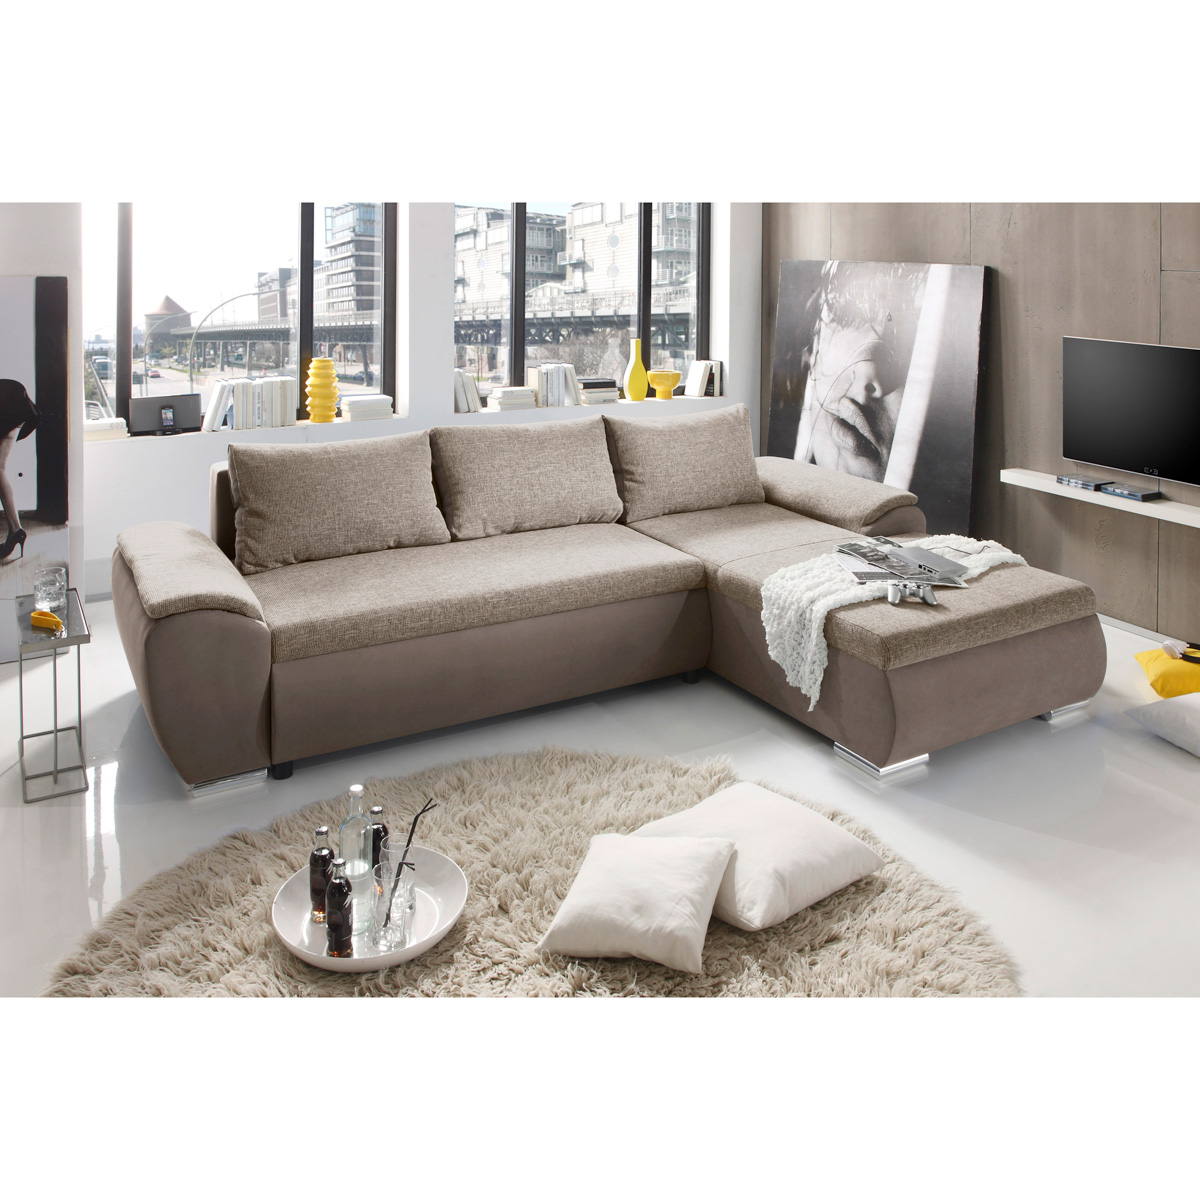 ecksofa game sofa auswahl petrol braun beige schwarz. Black Bedroom Furniture Sets. Home Design Ideas